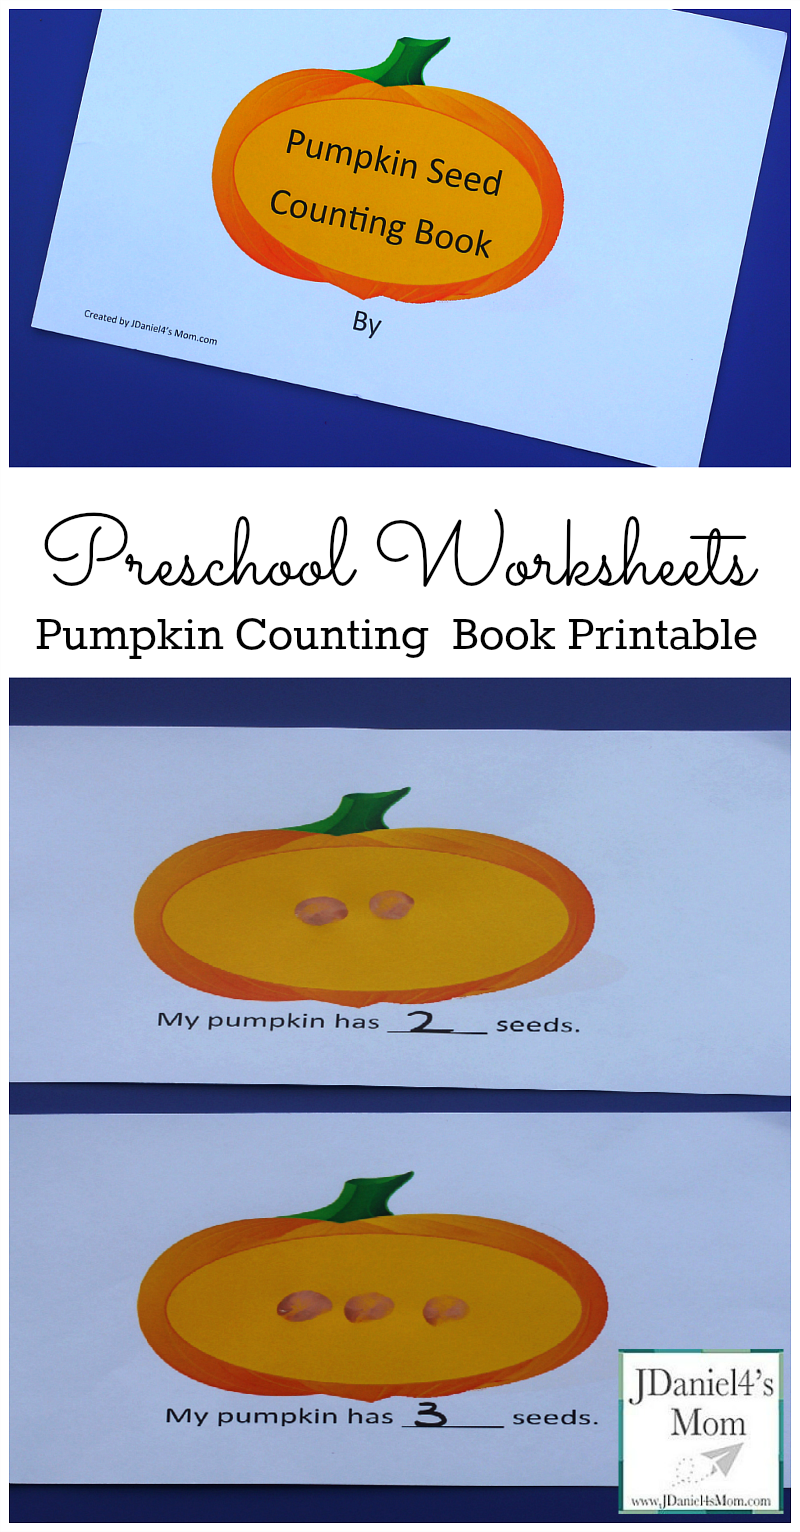 pumpkin counting preschool worksheets pumpkin best free printable worksheets. Black Bedroom Furniture Sets. Home Design Ideas